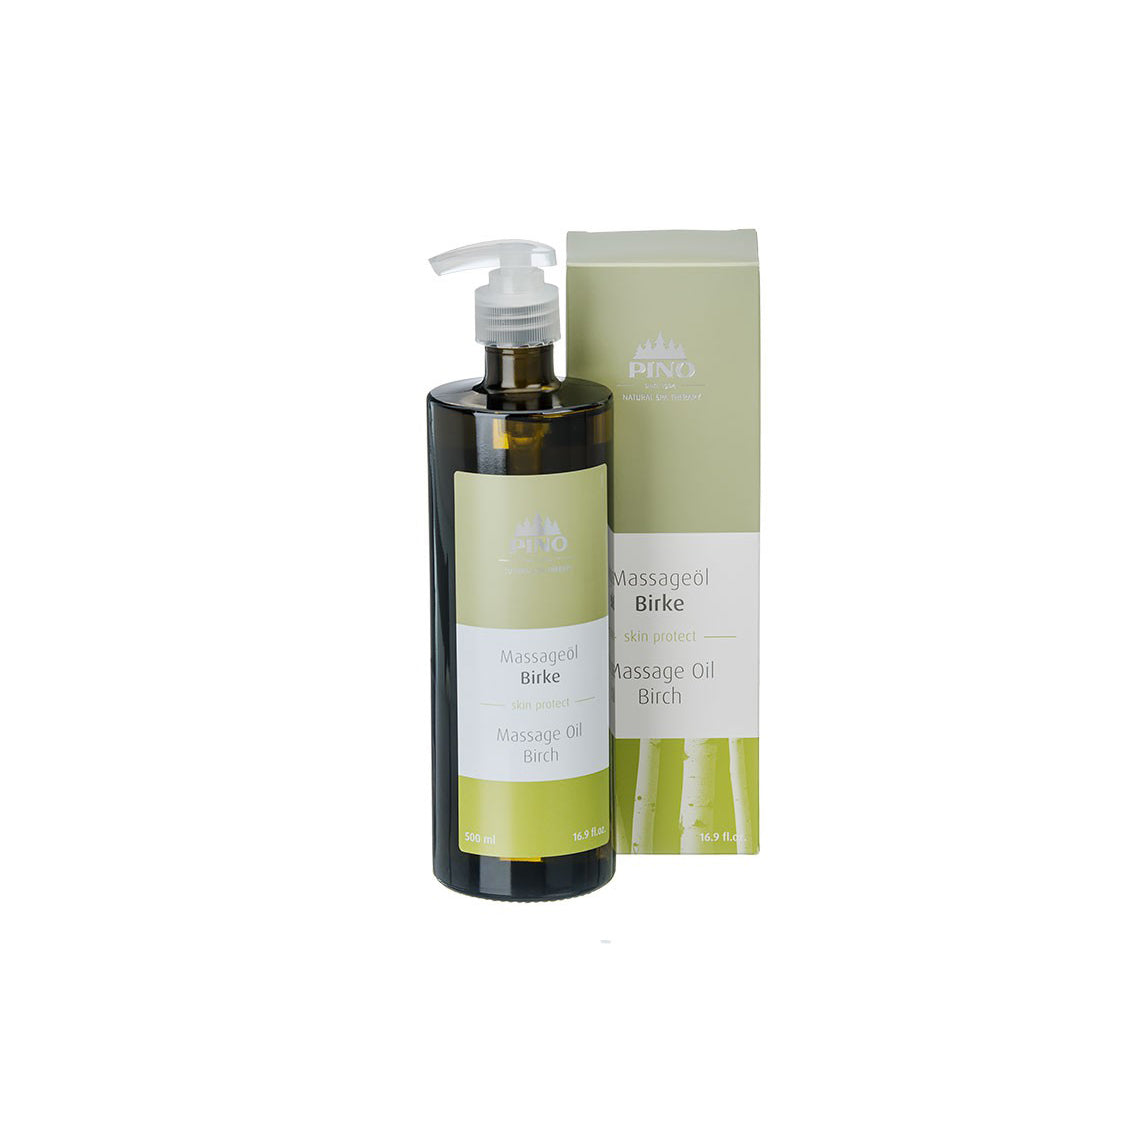 Massage Oil Birch